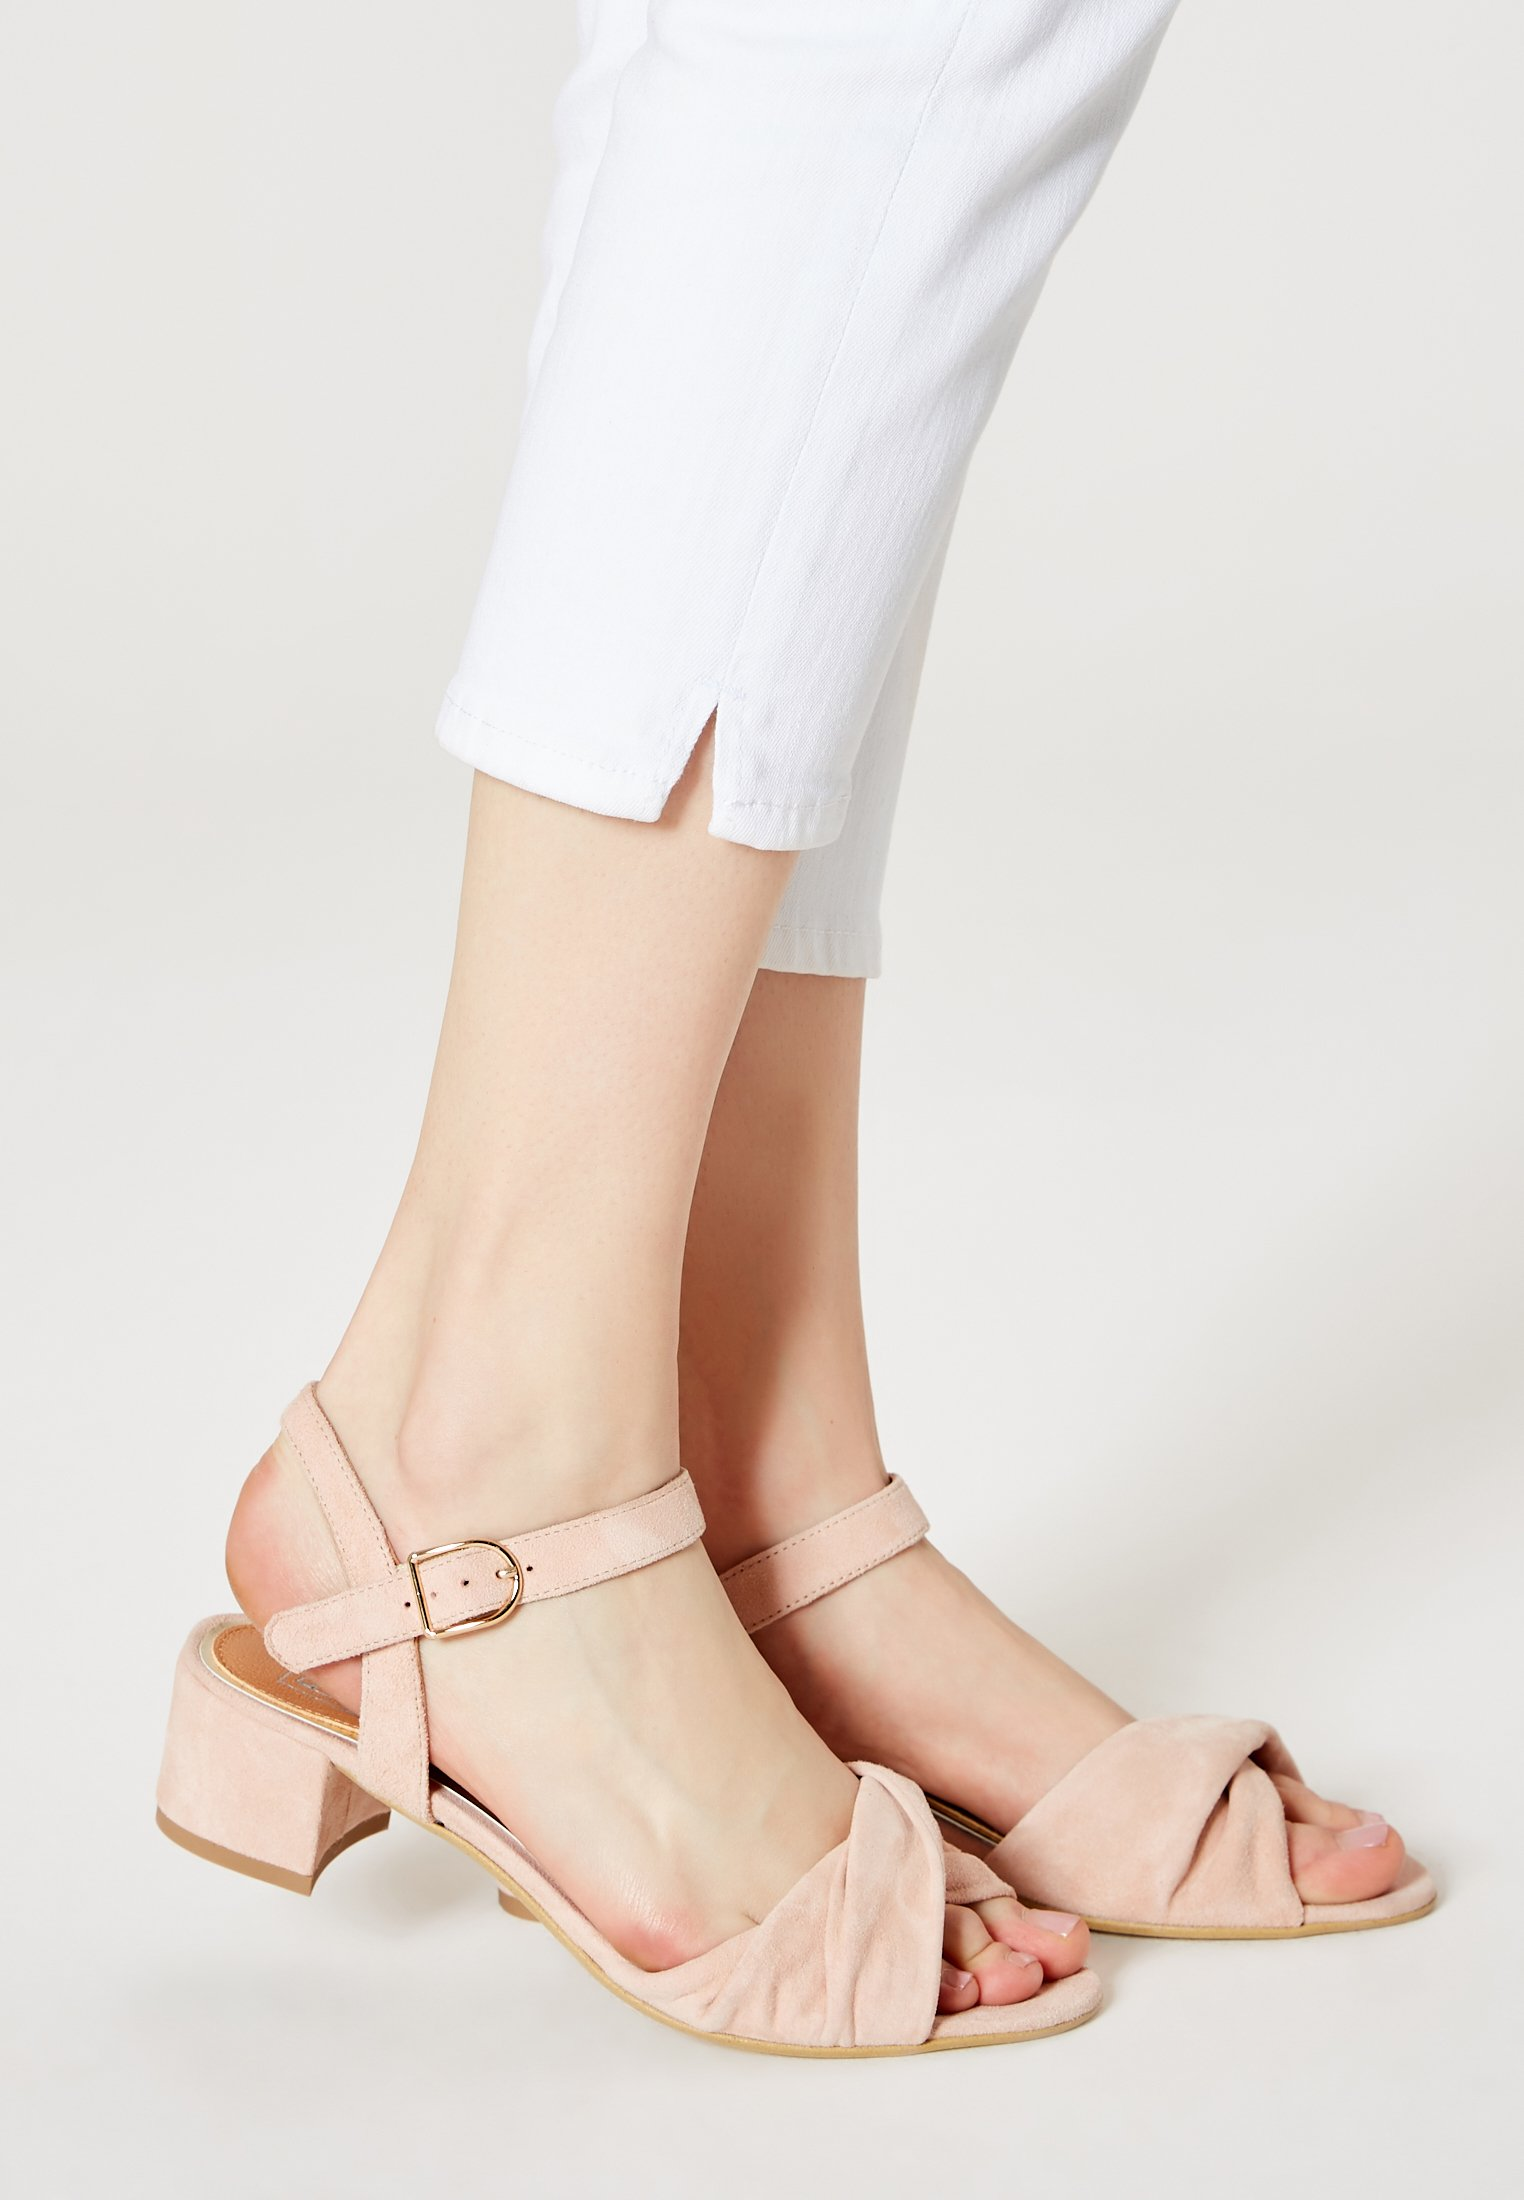 New Fashion Style Of High-Quality Cheap Women's Shoes RISA Sandals lachs JR494Ep0m ehhShIuKp